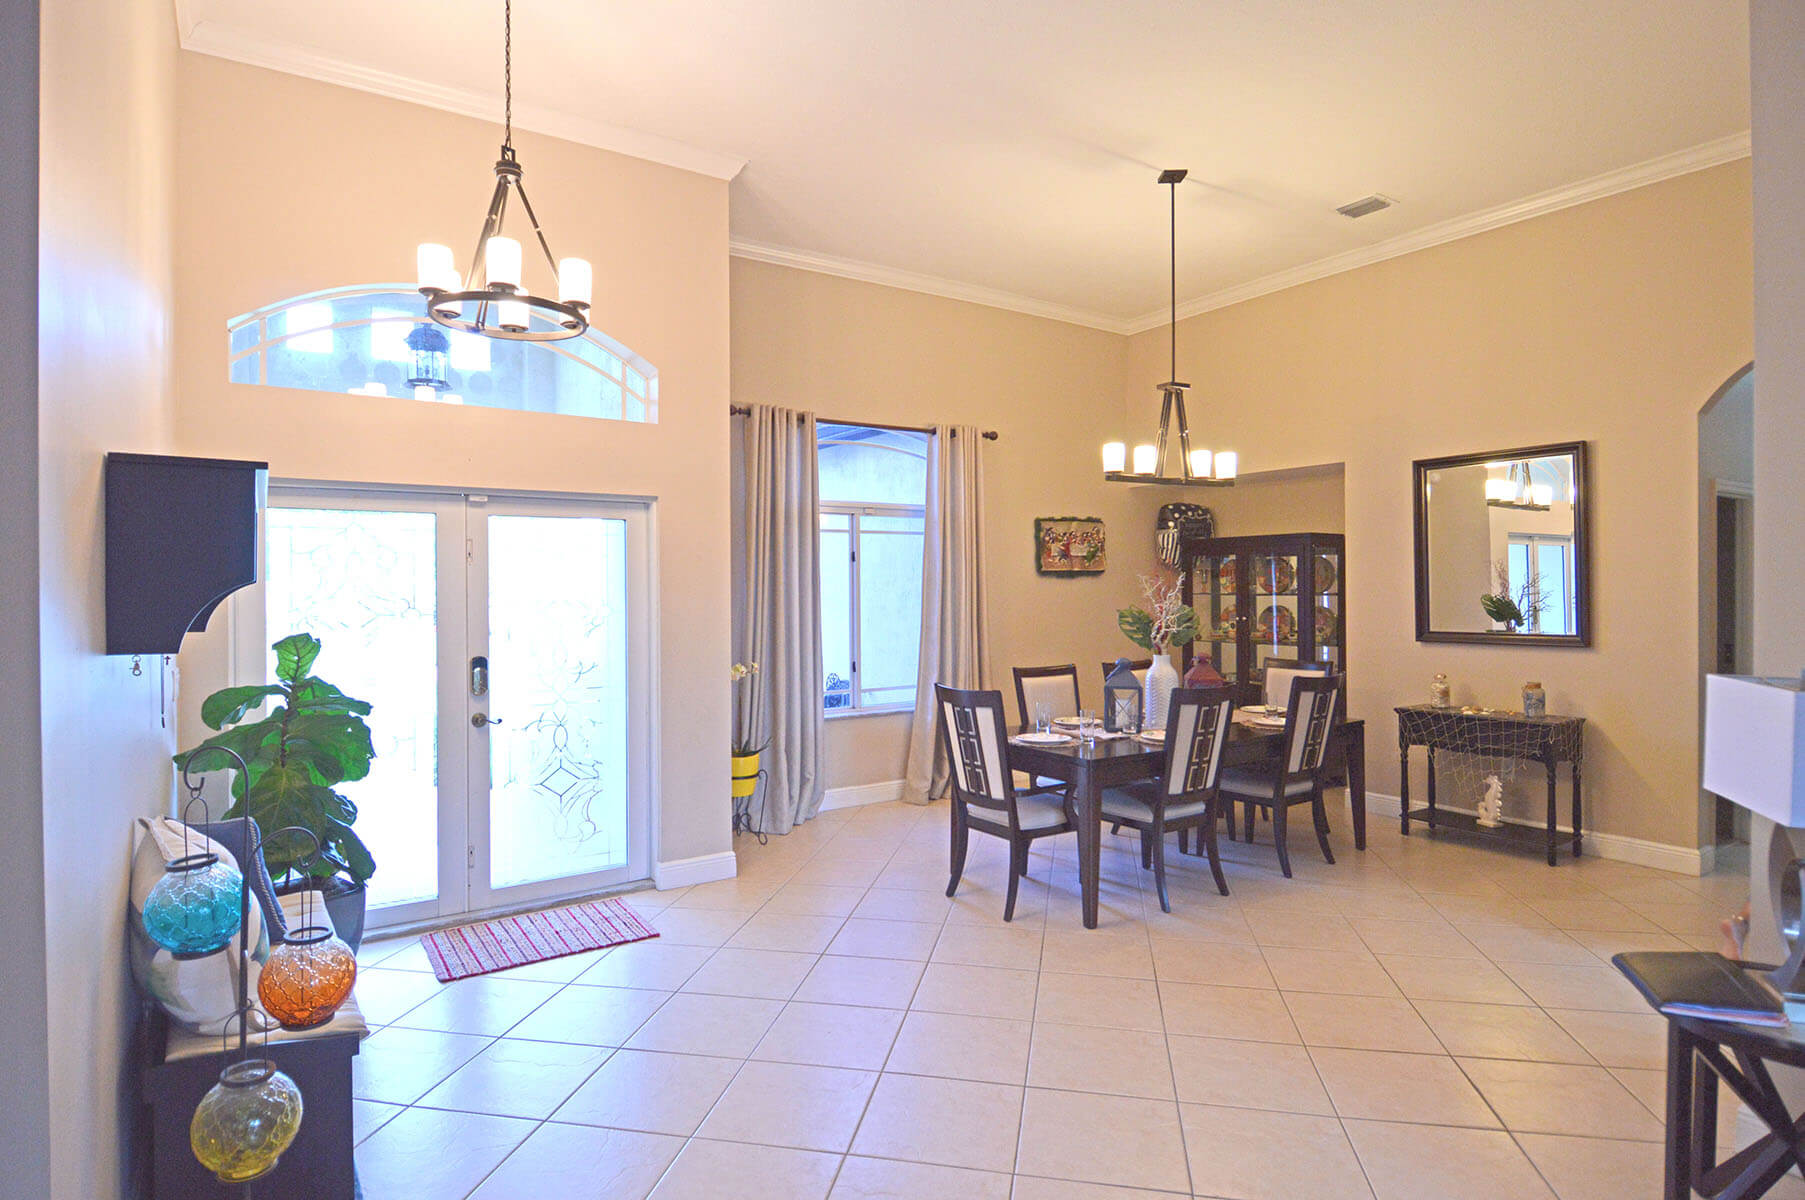 13133-SW-213-Ter-Miami-FL-33177-10-Entrance-Dining-Room.jpg